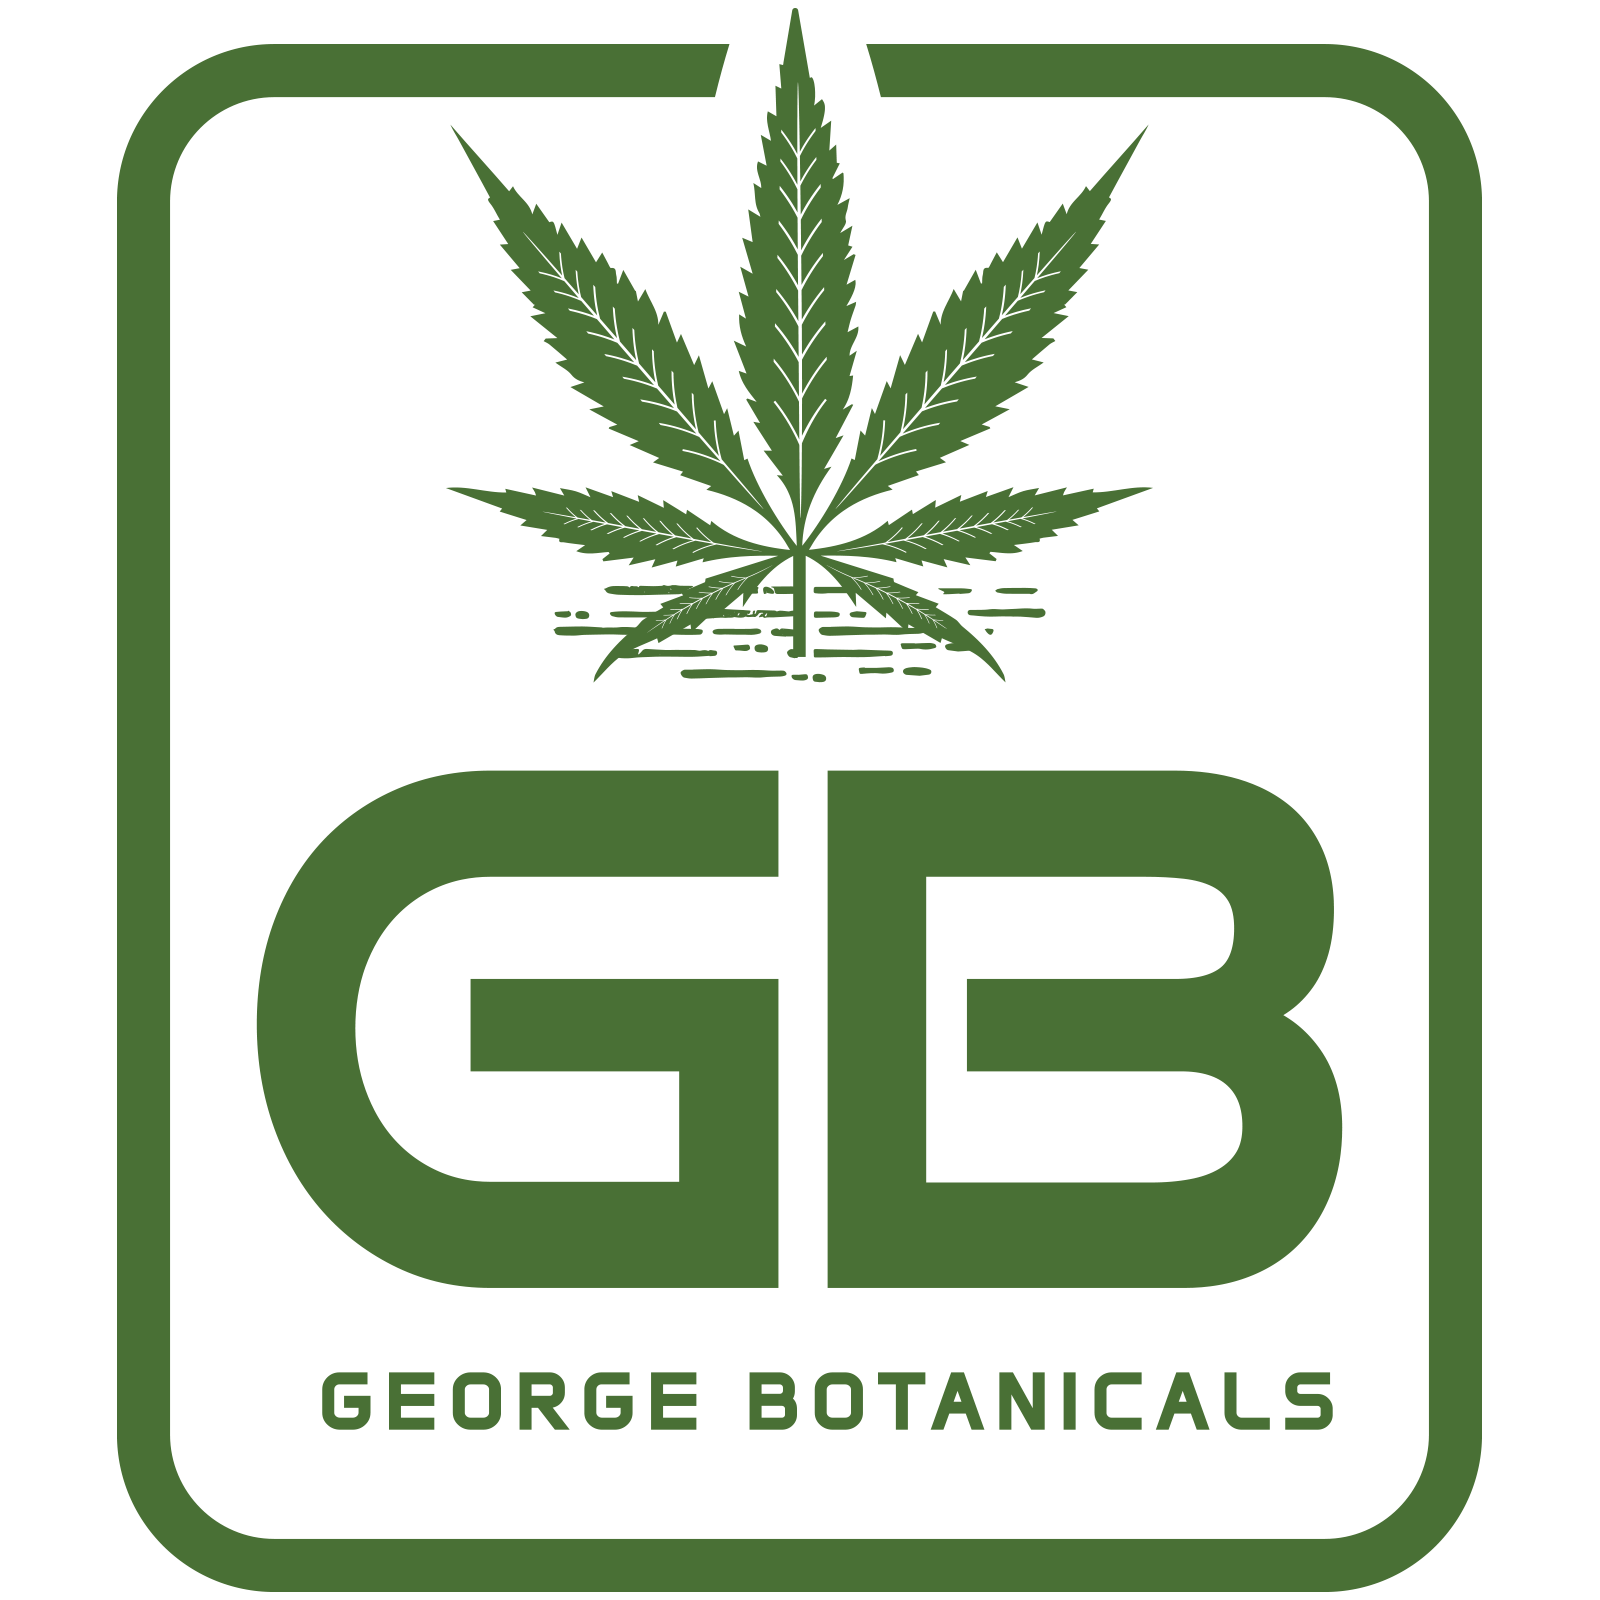 George Botanical (a trading name of Goodbody Botanicals Ltd)